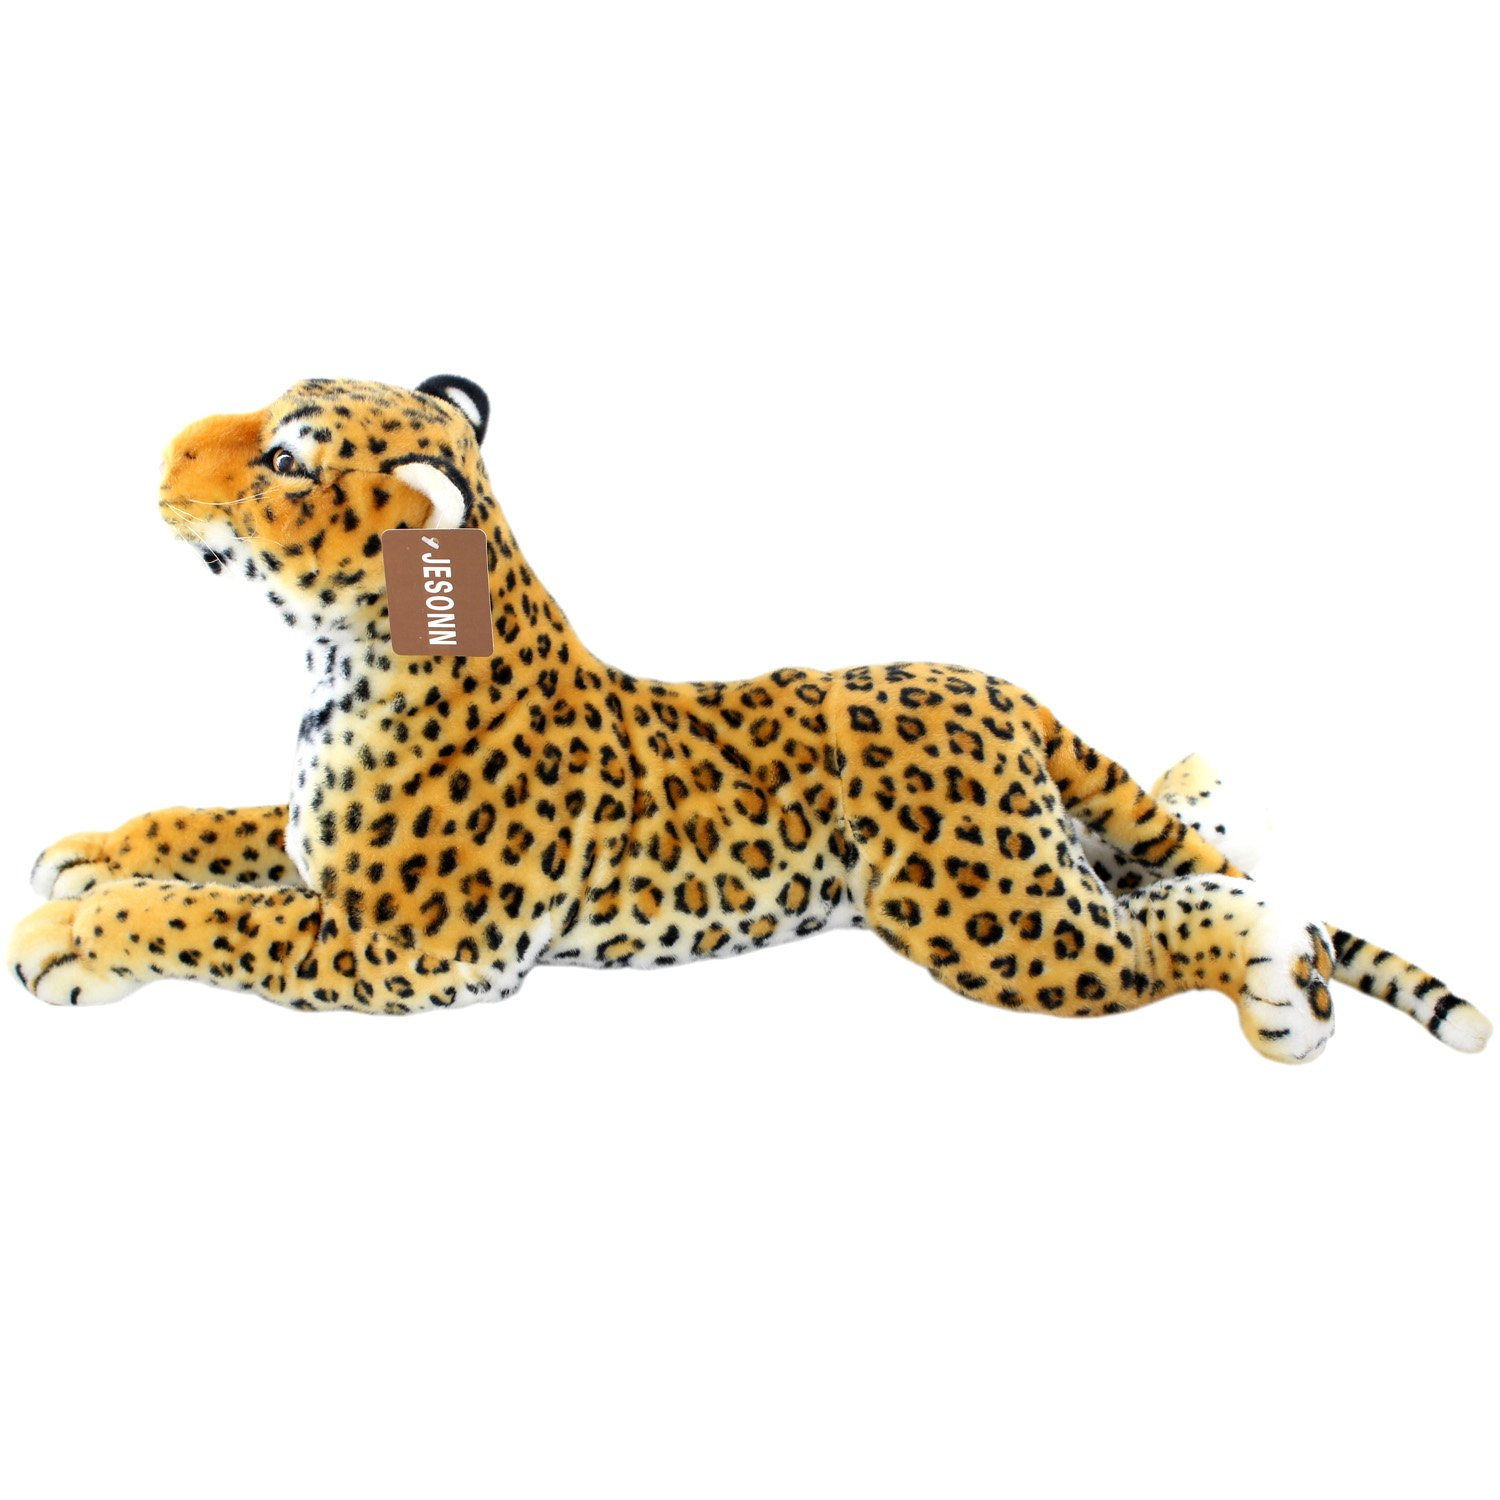 grovel realistic jesonn and spotted stuffed dp toys amazon jaguar soft or baby kids pillow for animals games com gifts leopard plush